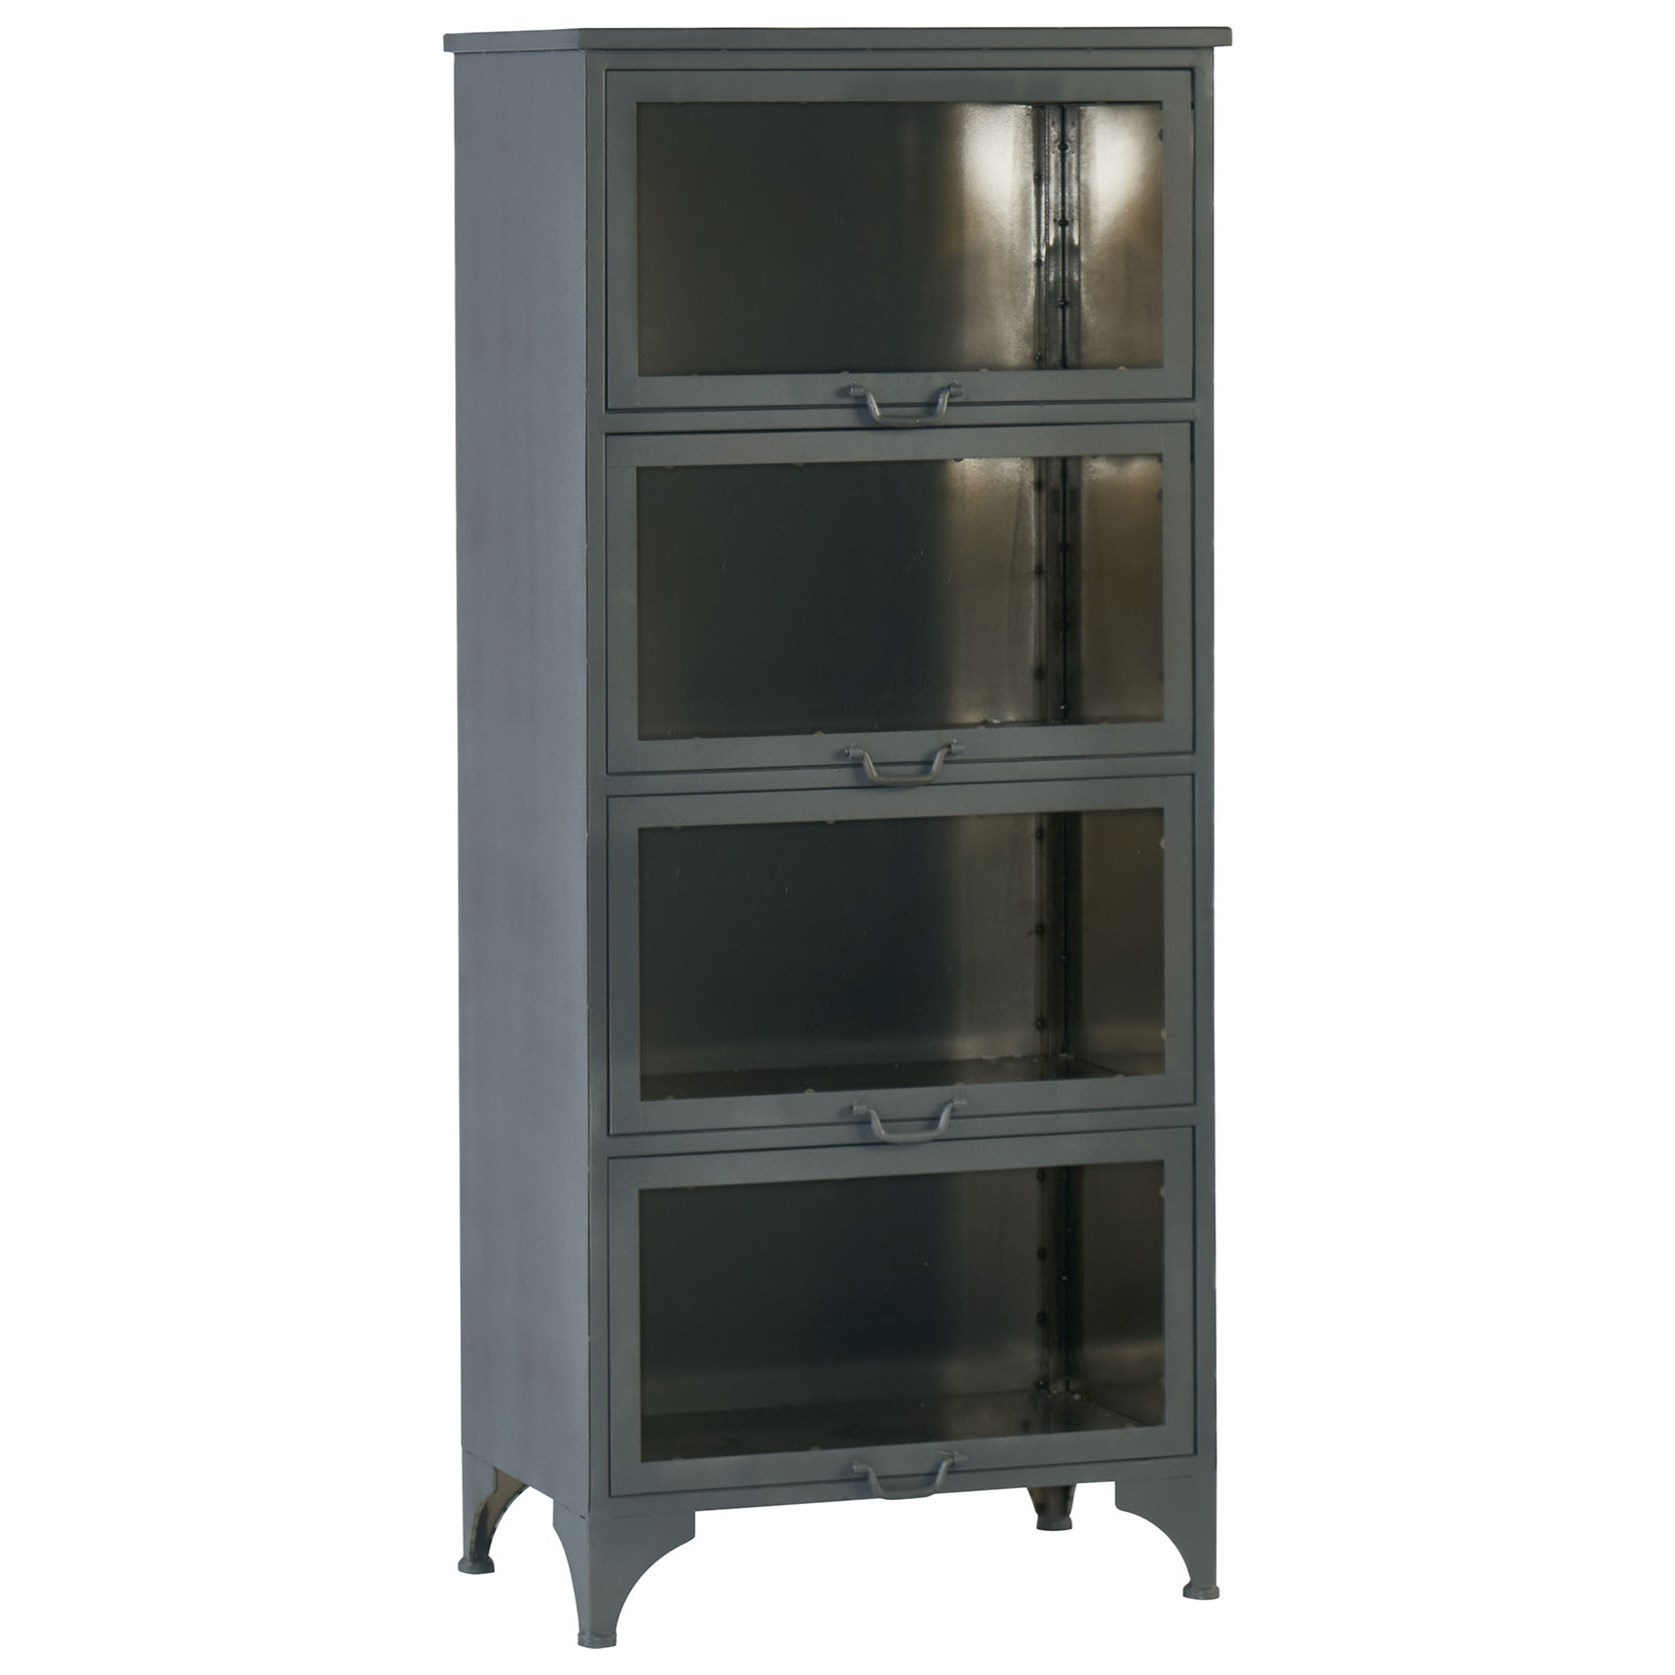 Case Metal Cabinet With Glass Doors